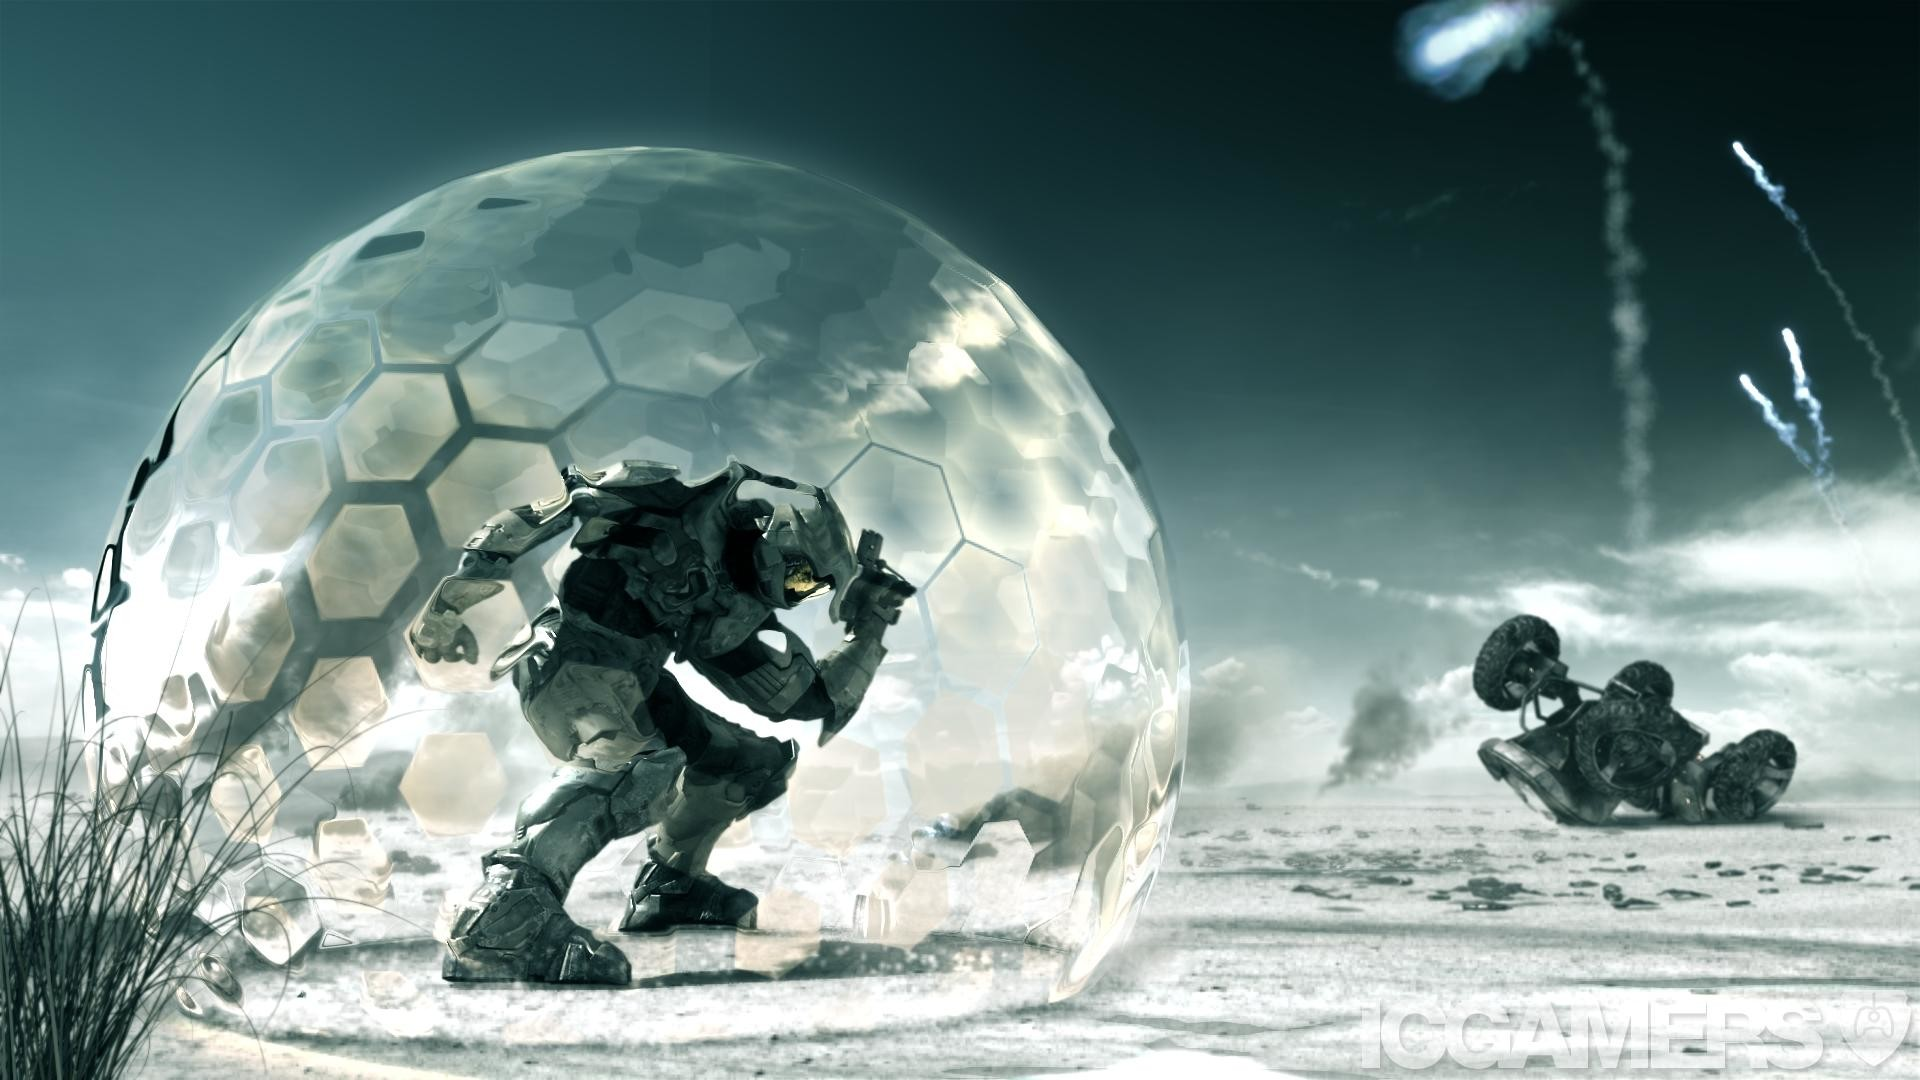 Wallpapers For > Halo 3 Wallpaper 1920×1080